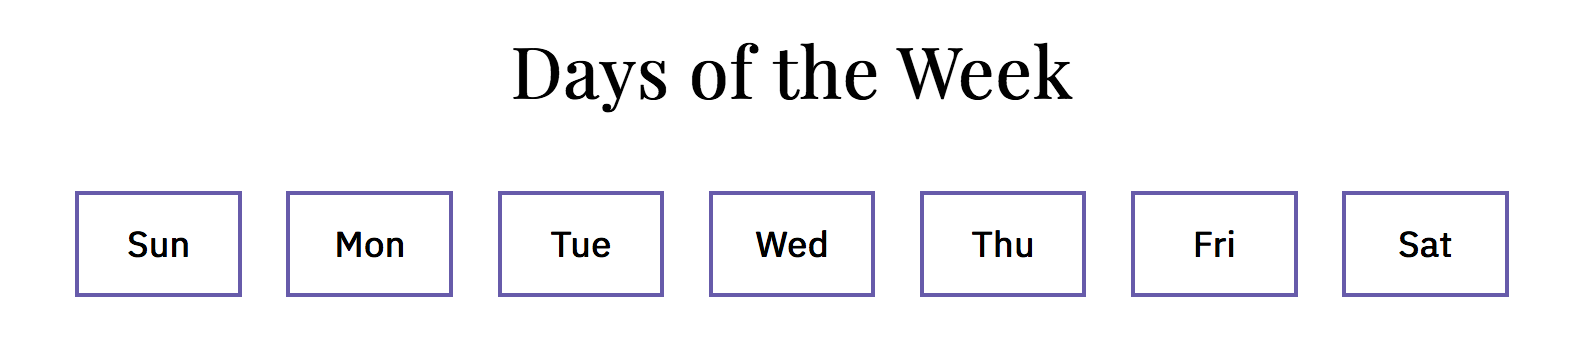 day of the week selector in English using short names